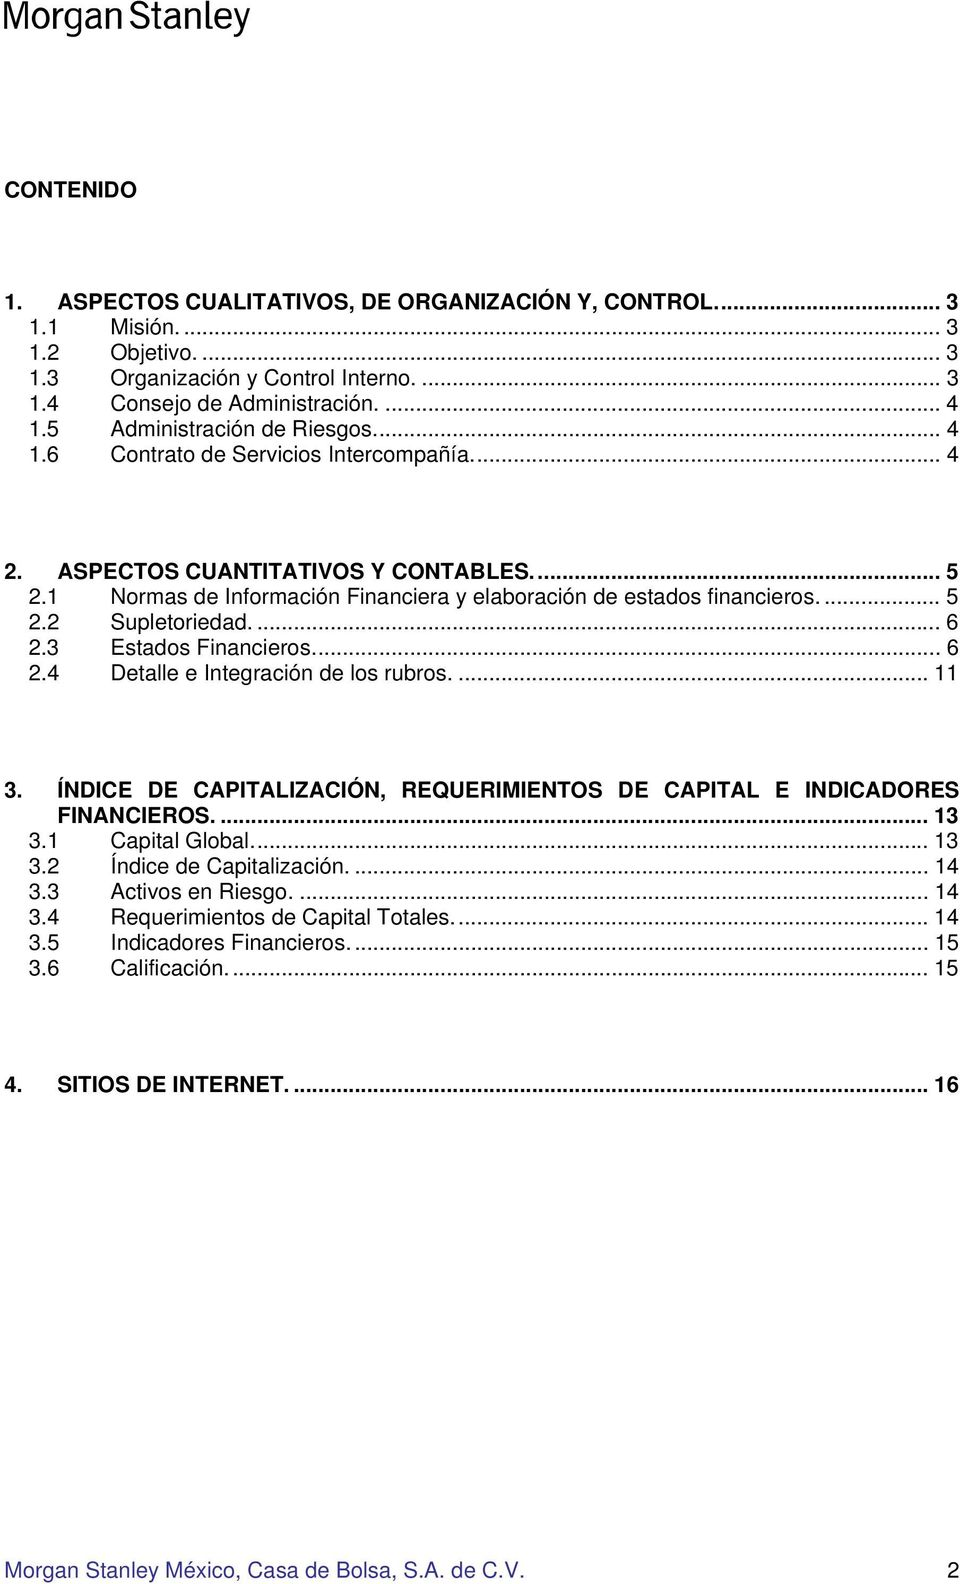 ... 6 2.3 Estados Financieros... 6 2.4 Detalle e Integración de los rubros.... 11 3. ÍNDICE DE CAPITALIZACIÓN, REQUERIMIENTOS DE CAPITAL E INDICADORES FINANCIEROS.... 13 3.1 Capital Global... 13 3.2 Índice de Capitalización.